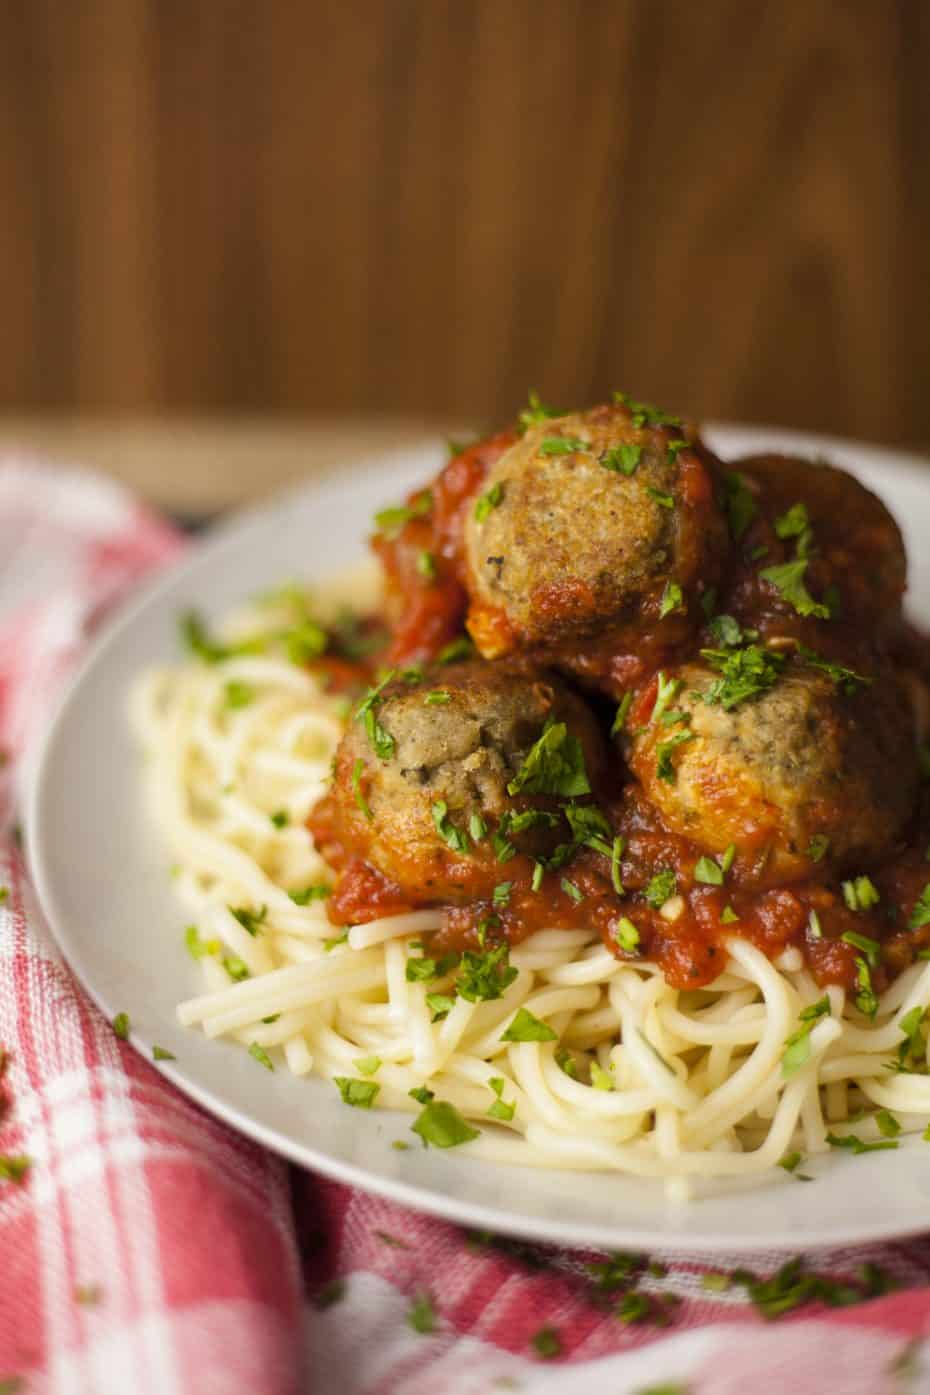 meatballs made with eggplant is one of our Easy Comfort Food Recipes